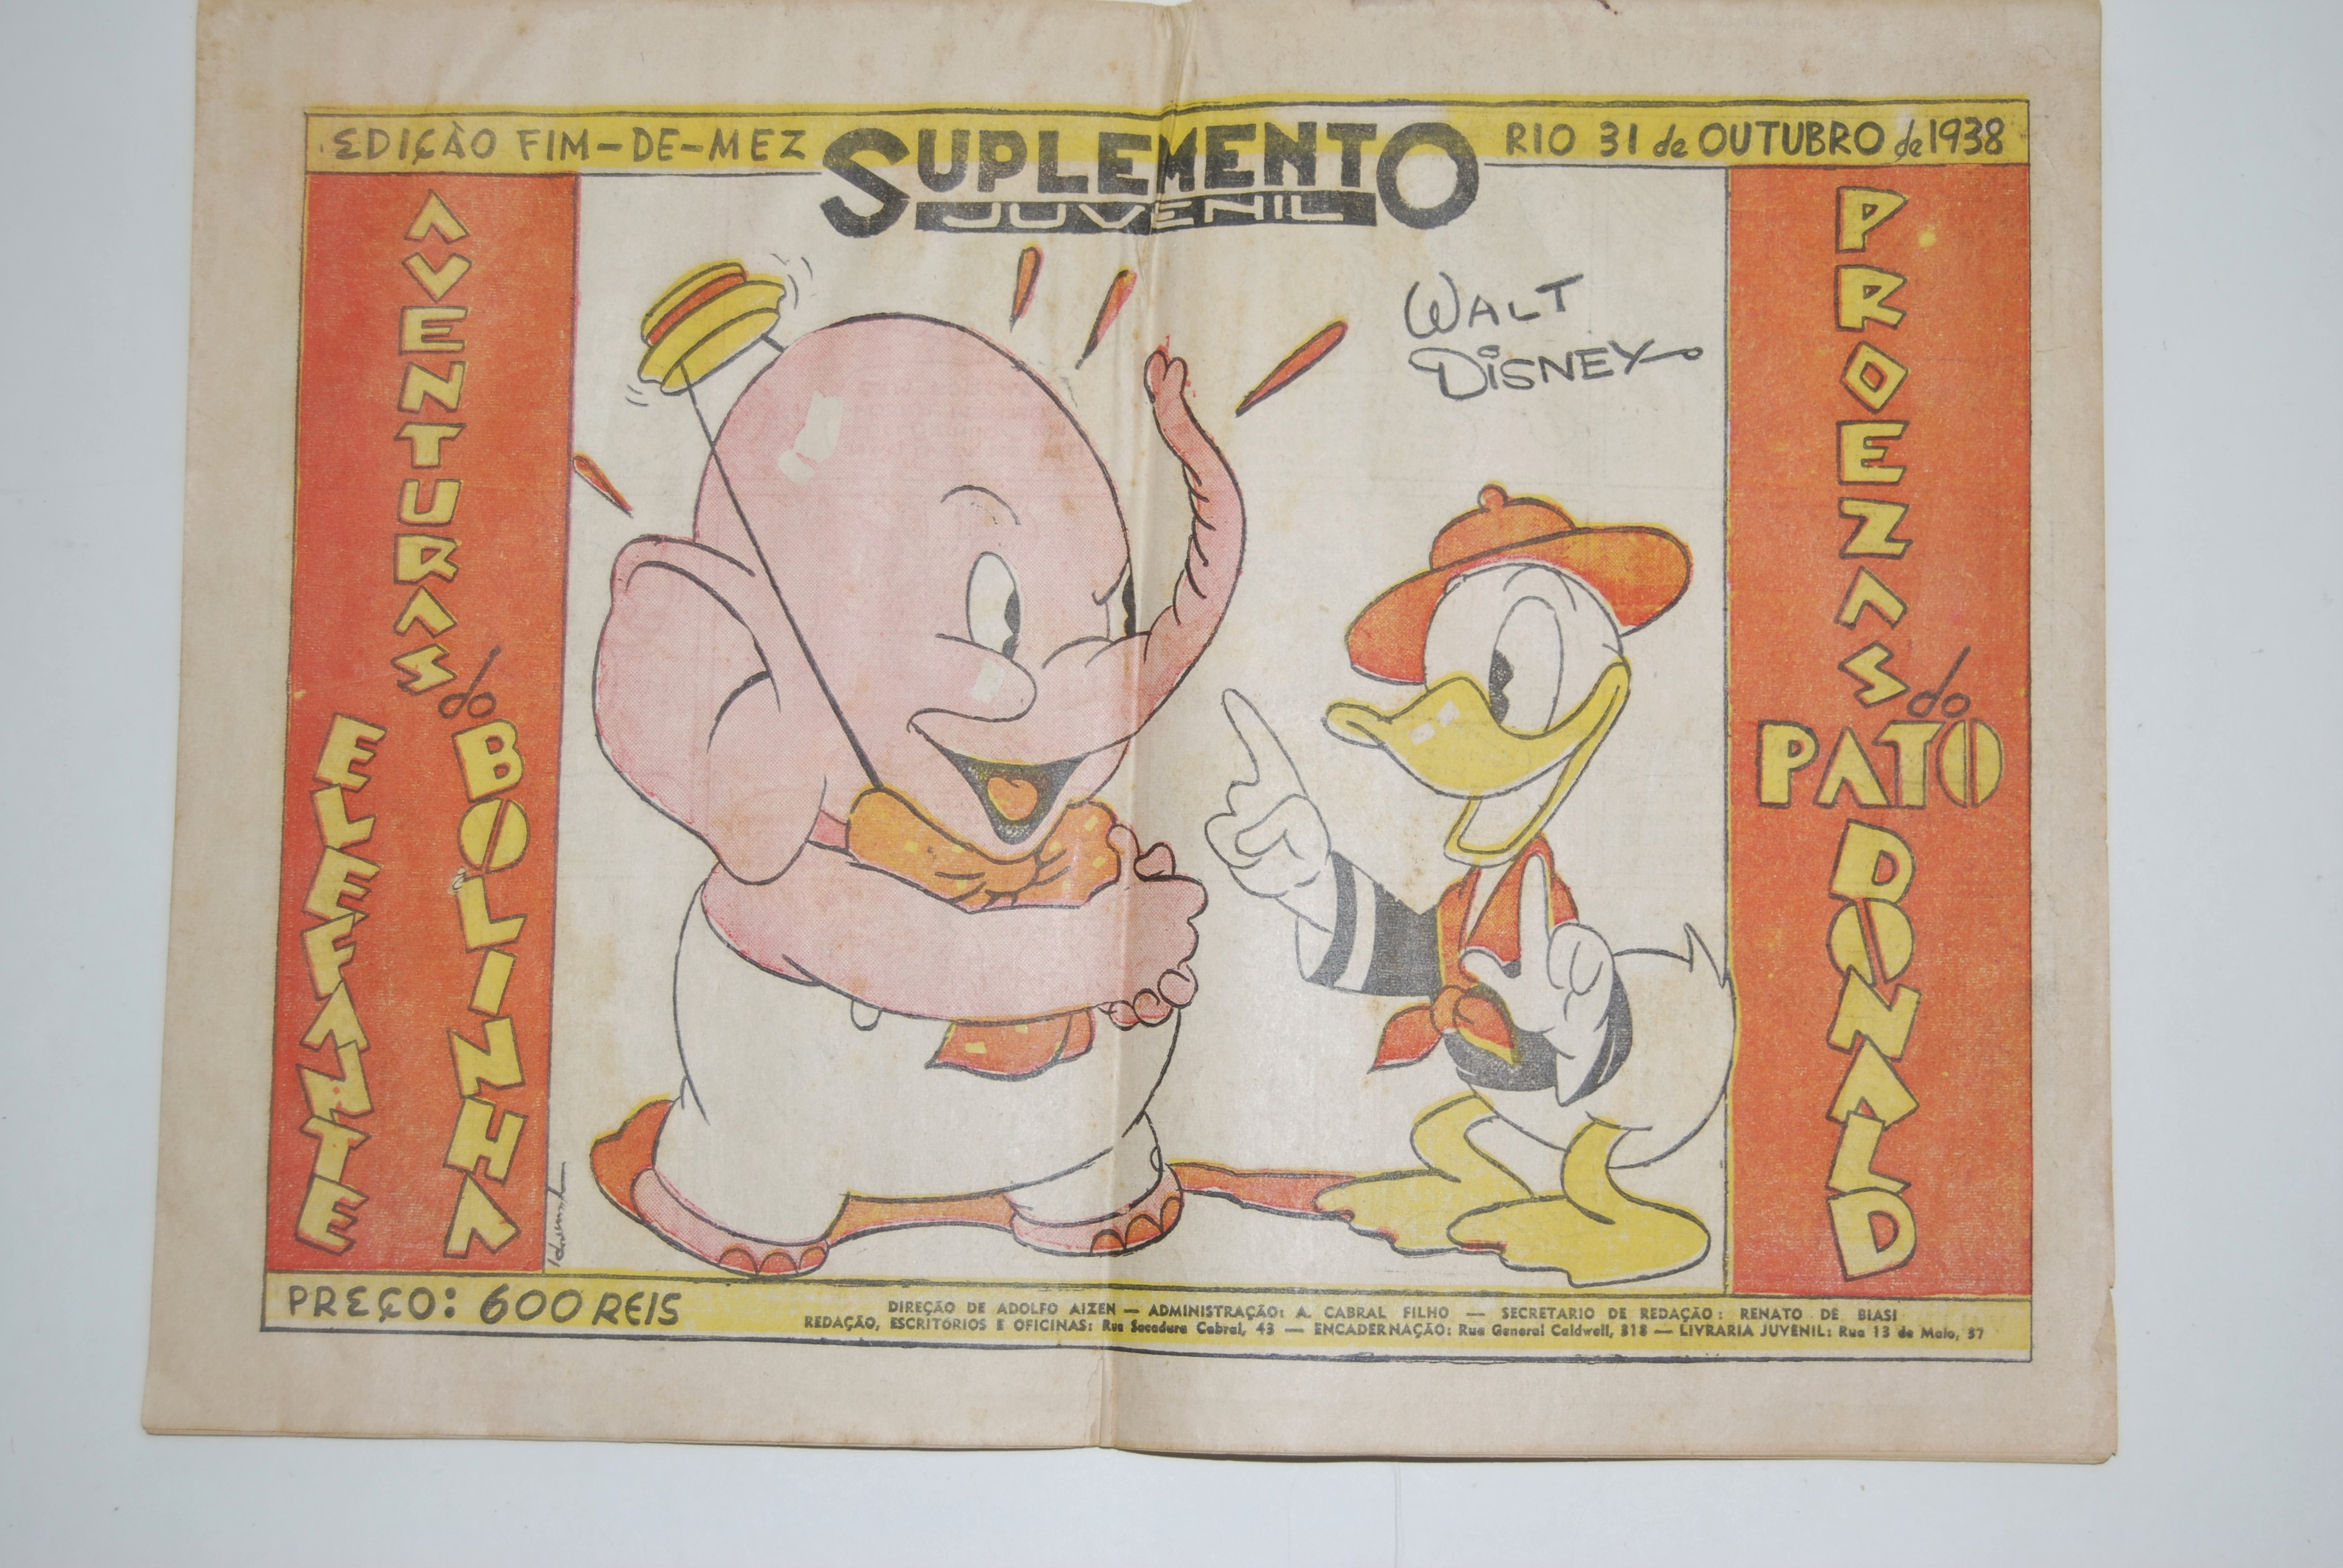 Image for WALT DISNEY COMIC STRIP on DONALD DUCK & ELEPHANT [DUMBO ?], published Oct. 31, 1938 in Rio De Janiero, Brazil in Portuguese, the official language of Brazil.  Published in Newspaper format, pages 14 in. wide by 10 1/2 in. high, 28 pages total. Title in Portuguese: ADVENTURA do ELEFANTE BOLINHA  - PROEZAS do PATO DONALD. Supplemento Juvenil. Edicao Fim-De-Mez, Rio 31 de Outurbo de 1938